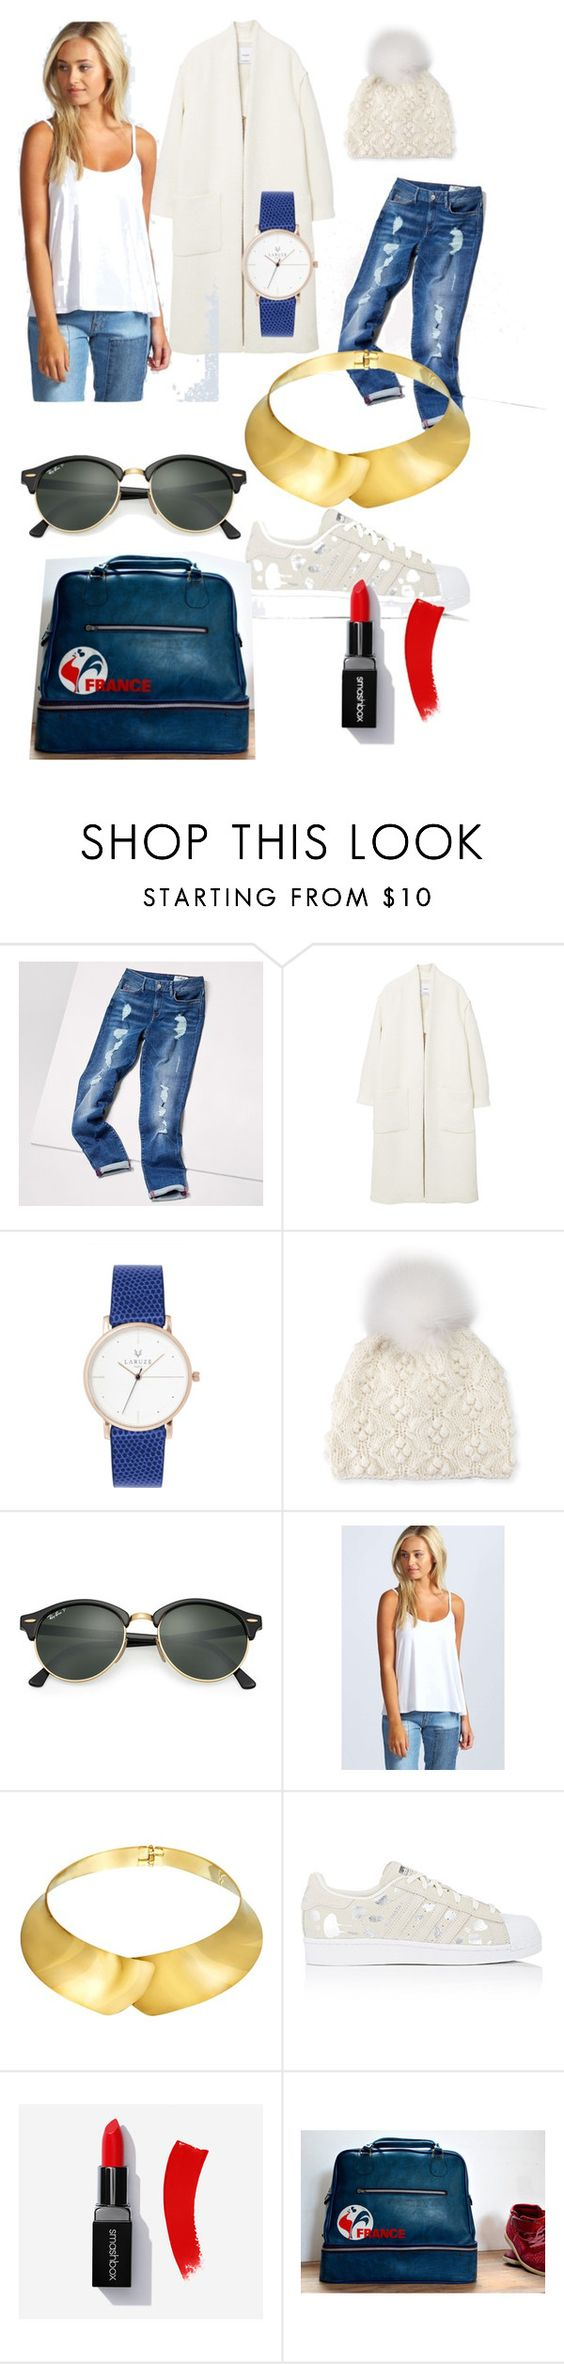 """Sans titre #1"" by legrenierdalphonse ❤ liked on Polyvore featuring Tommy Hilfiger, MANGO, Il Borgo, Ray-Ban, Boohoo, Alexa Starr and adidas"